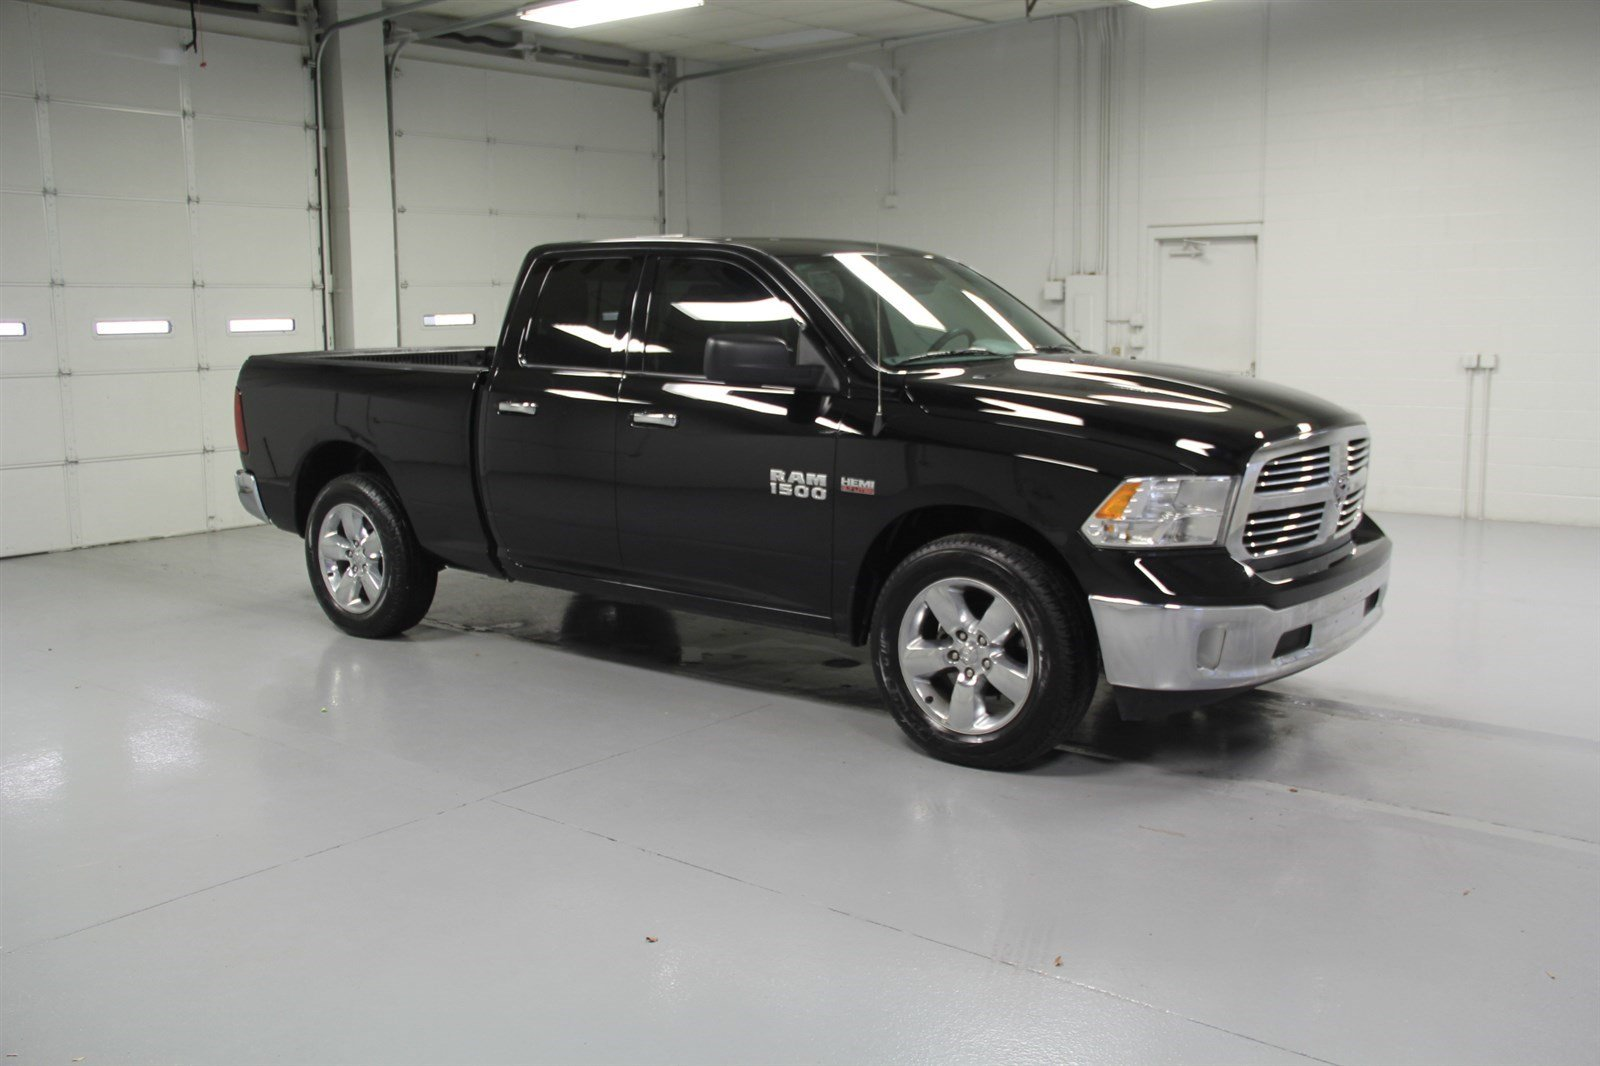 pre owned 2015 dodge ram 1500 quad cab big horn crew cab. Black Bedroom Furniture Sets. Home Design Ideas